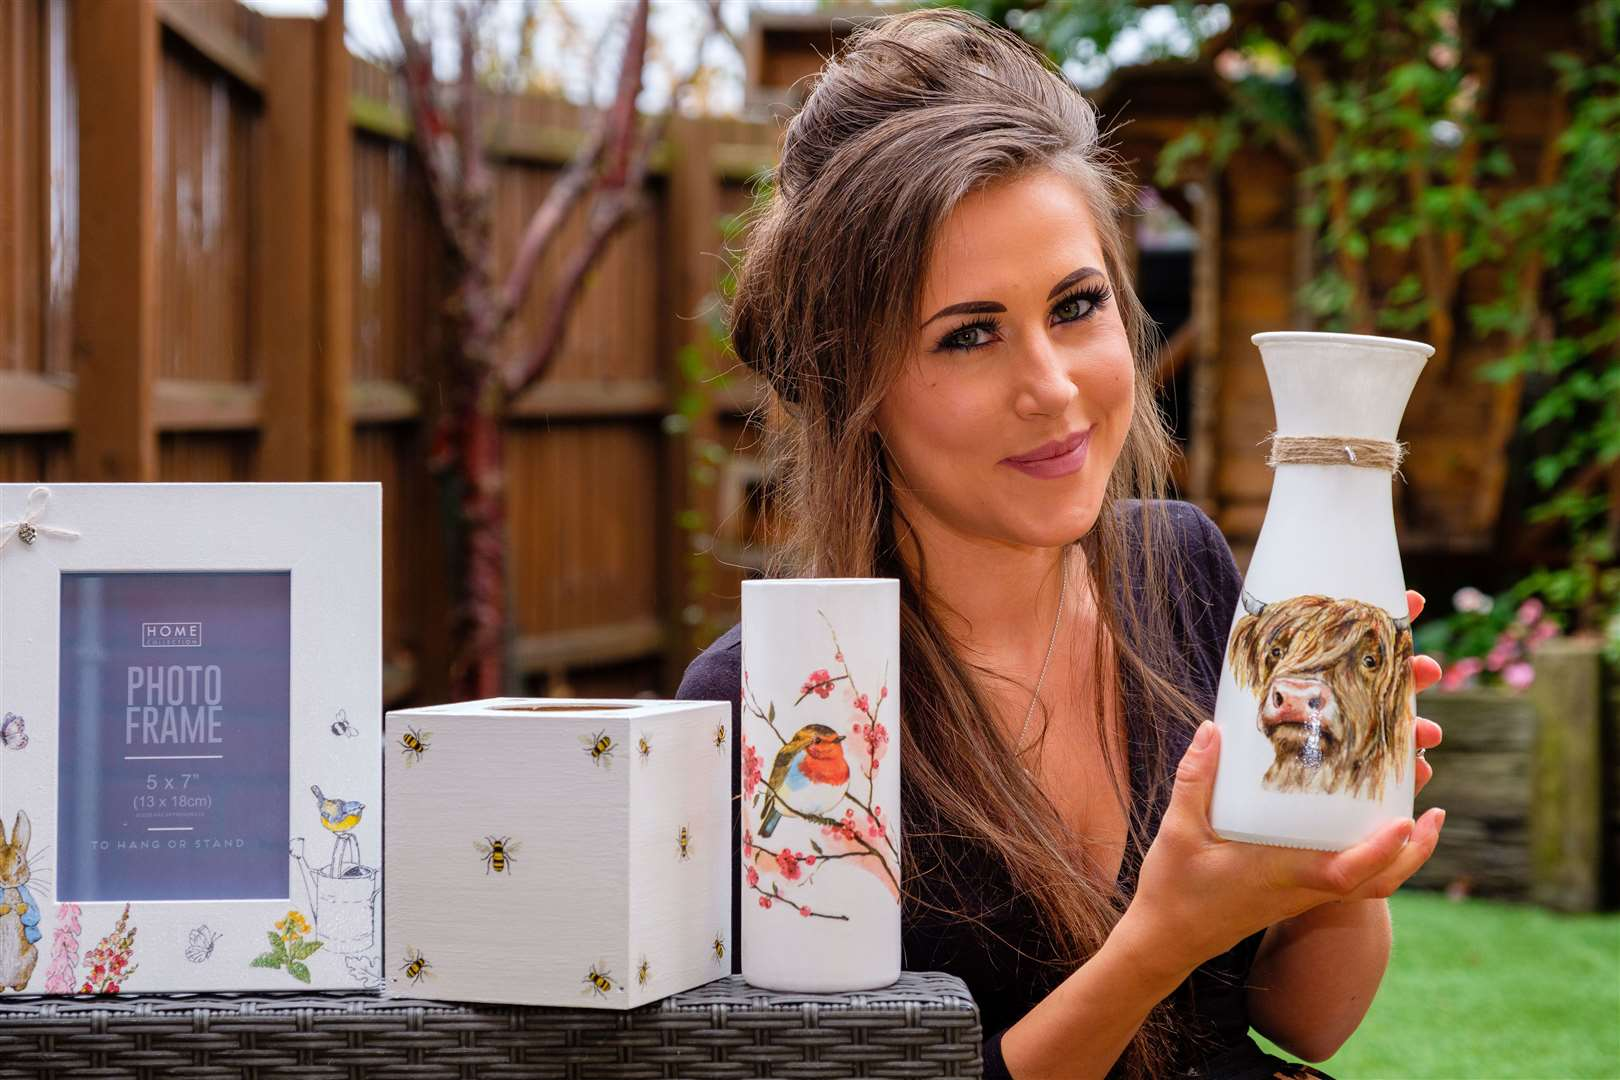 Emma Moyes sells homemade decorative items from her home in Kenninghall.	Picture: Mark Bullimore Photography.